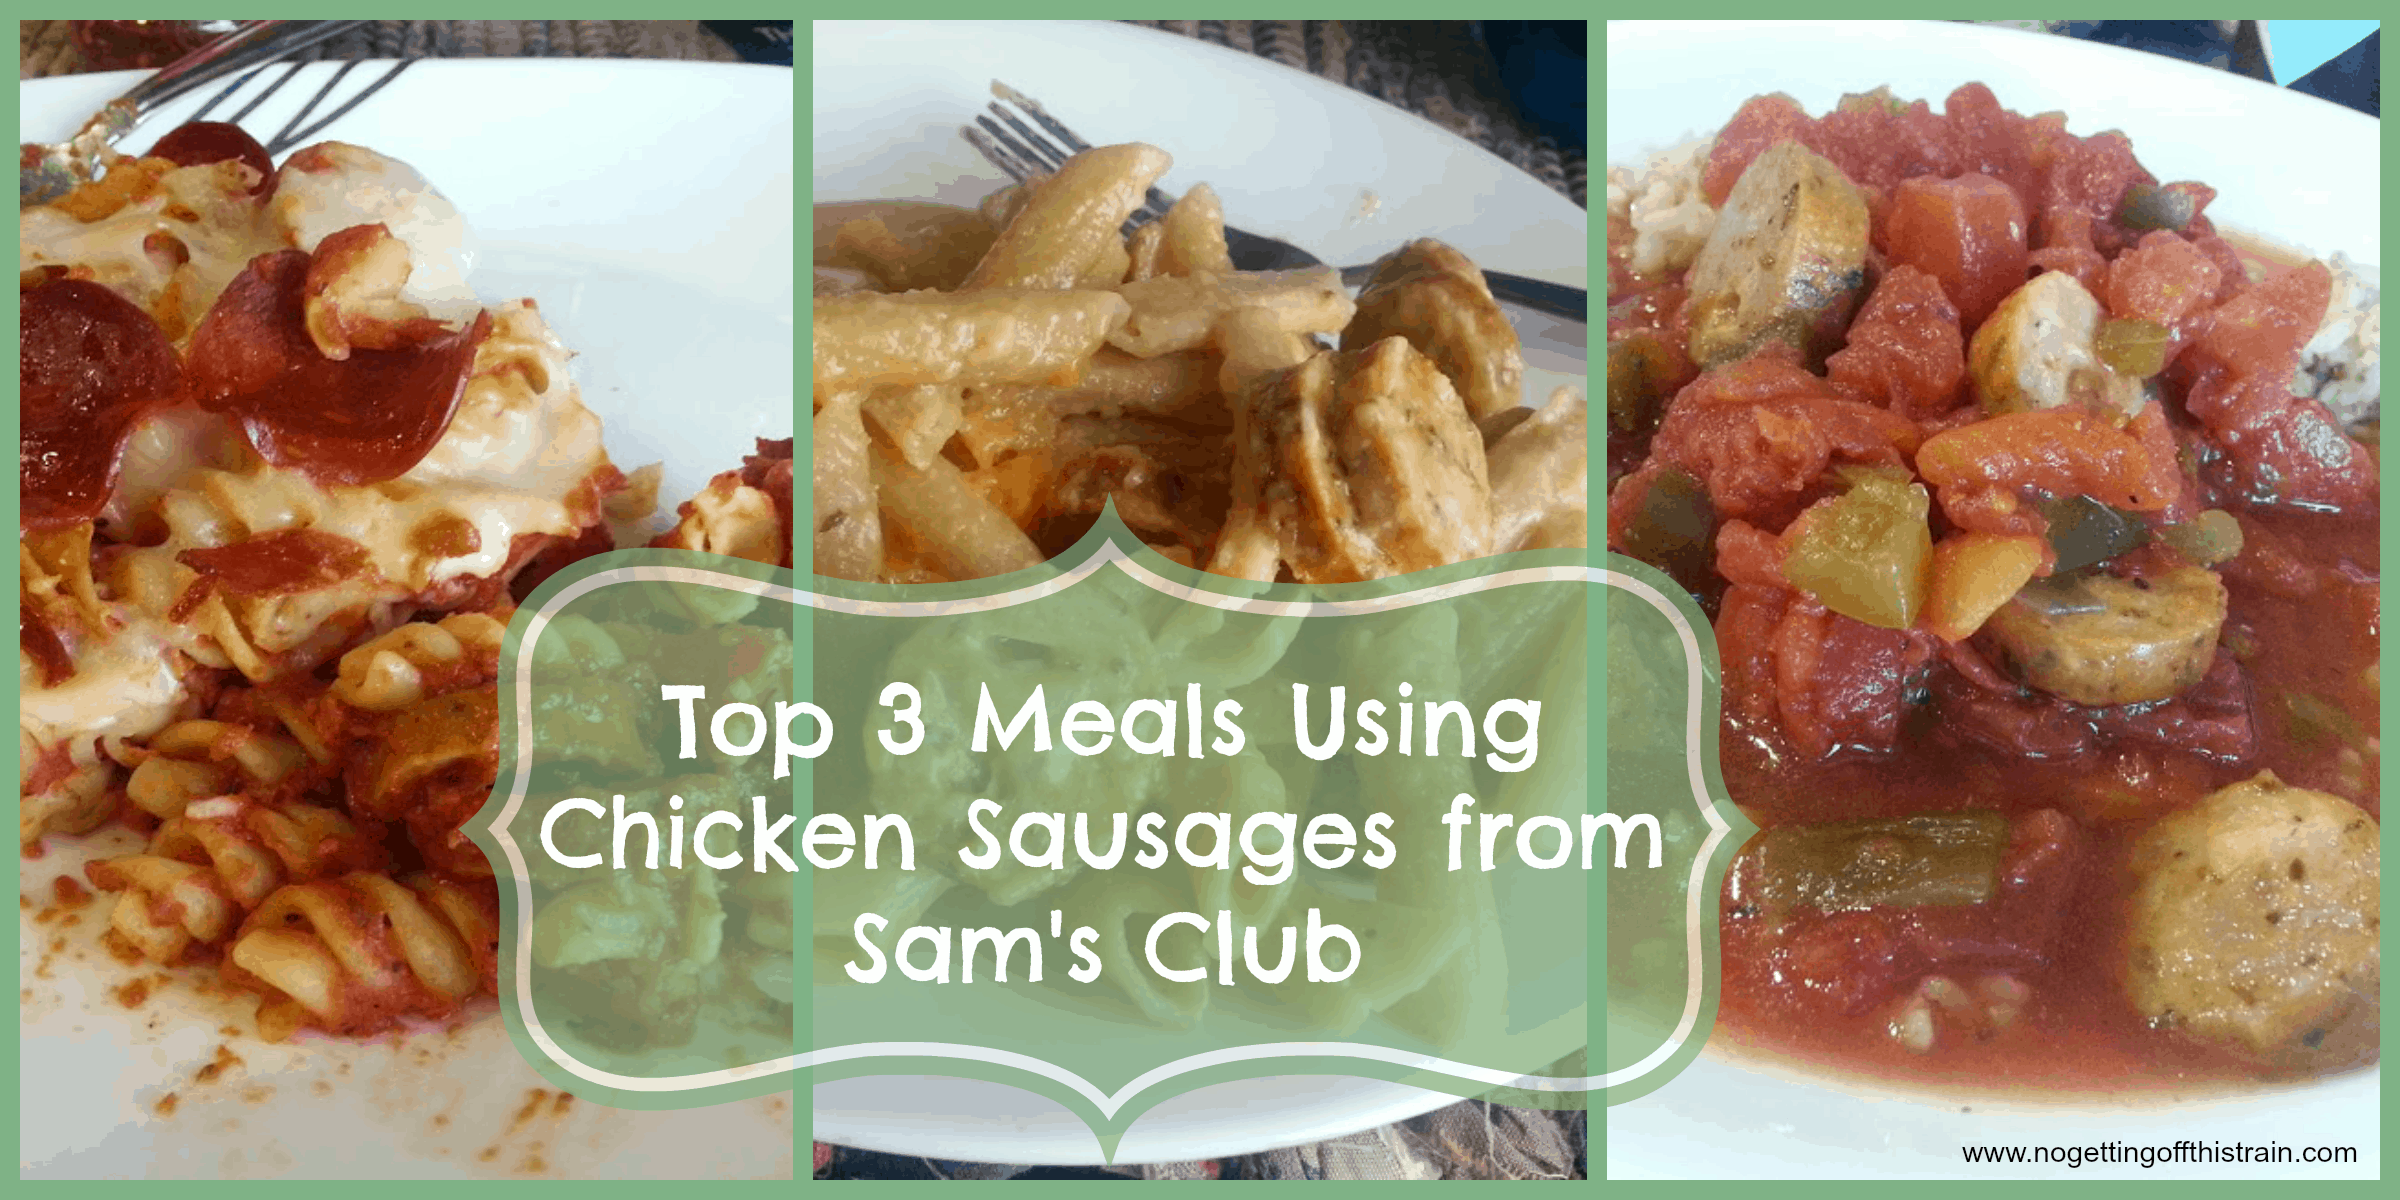 My Top 3 Meals Using a Pack of Sam's Club Chicken Sausages